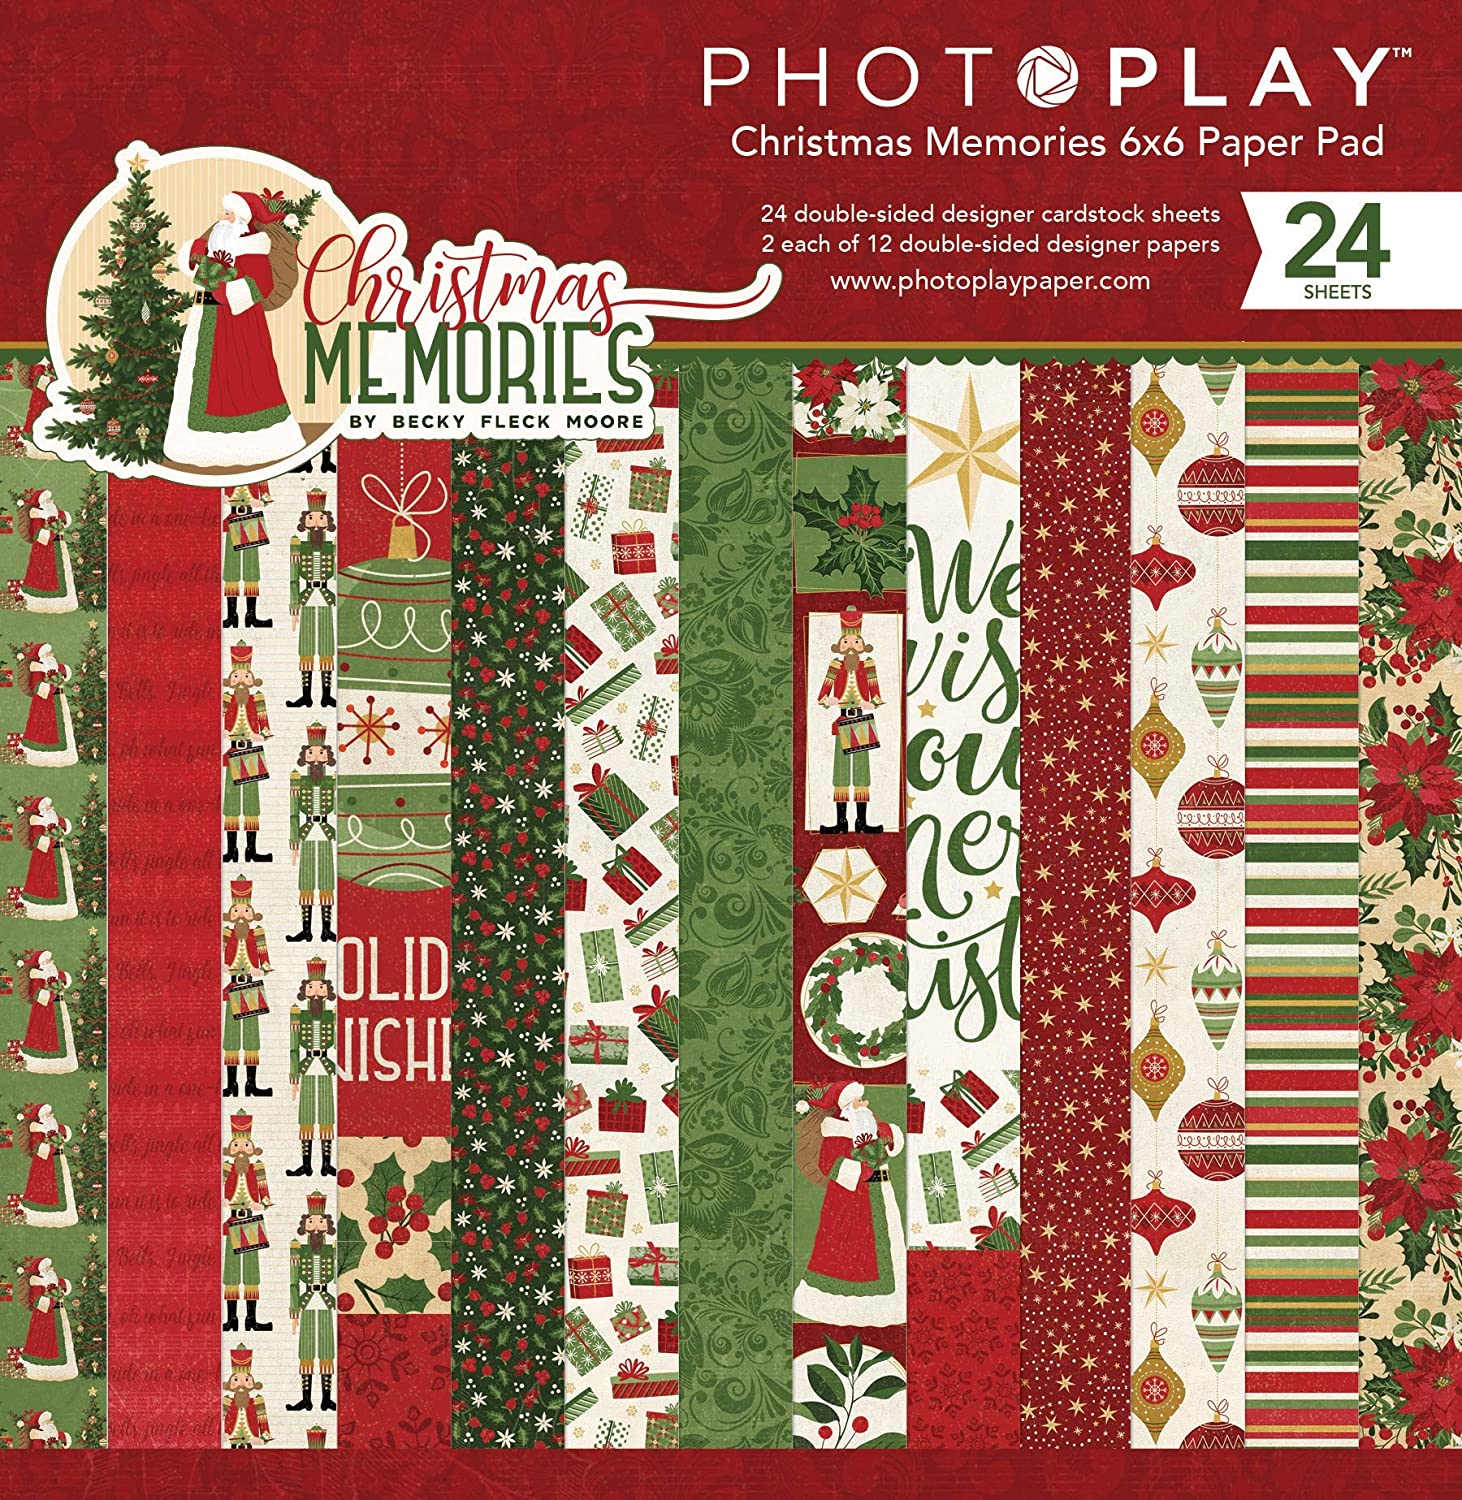 Photoplay Paper PhotoPlay Double-Sided 6